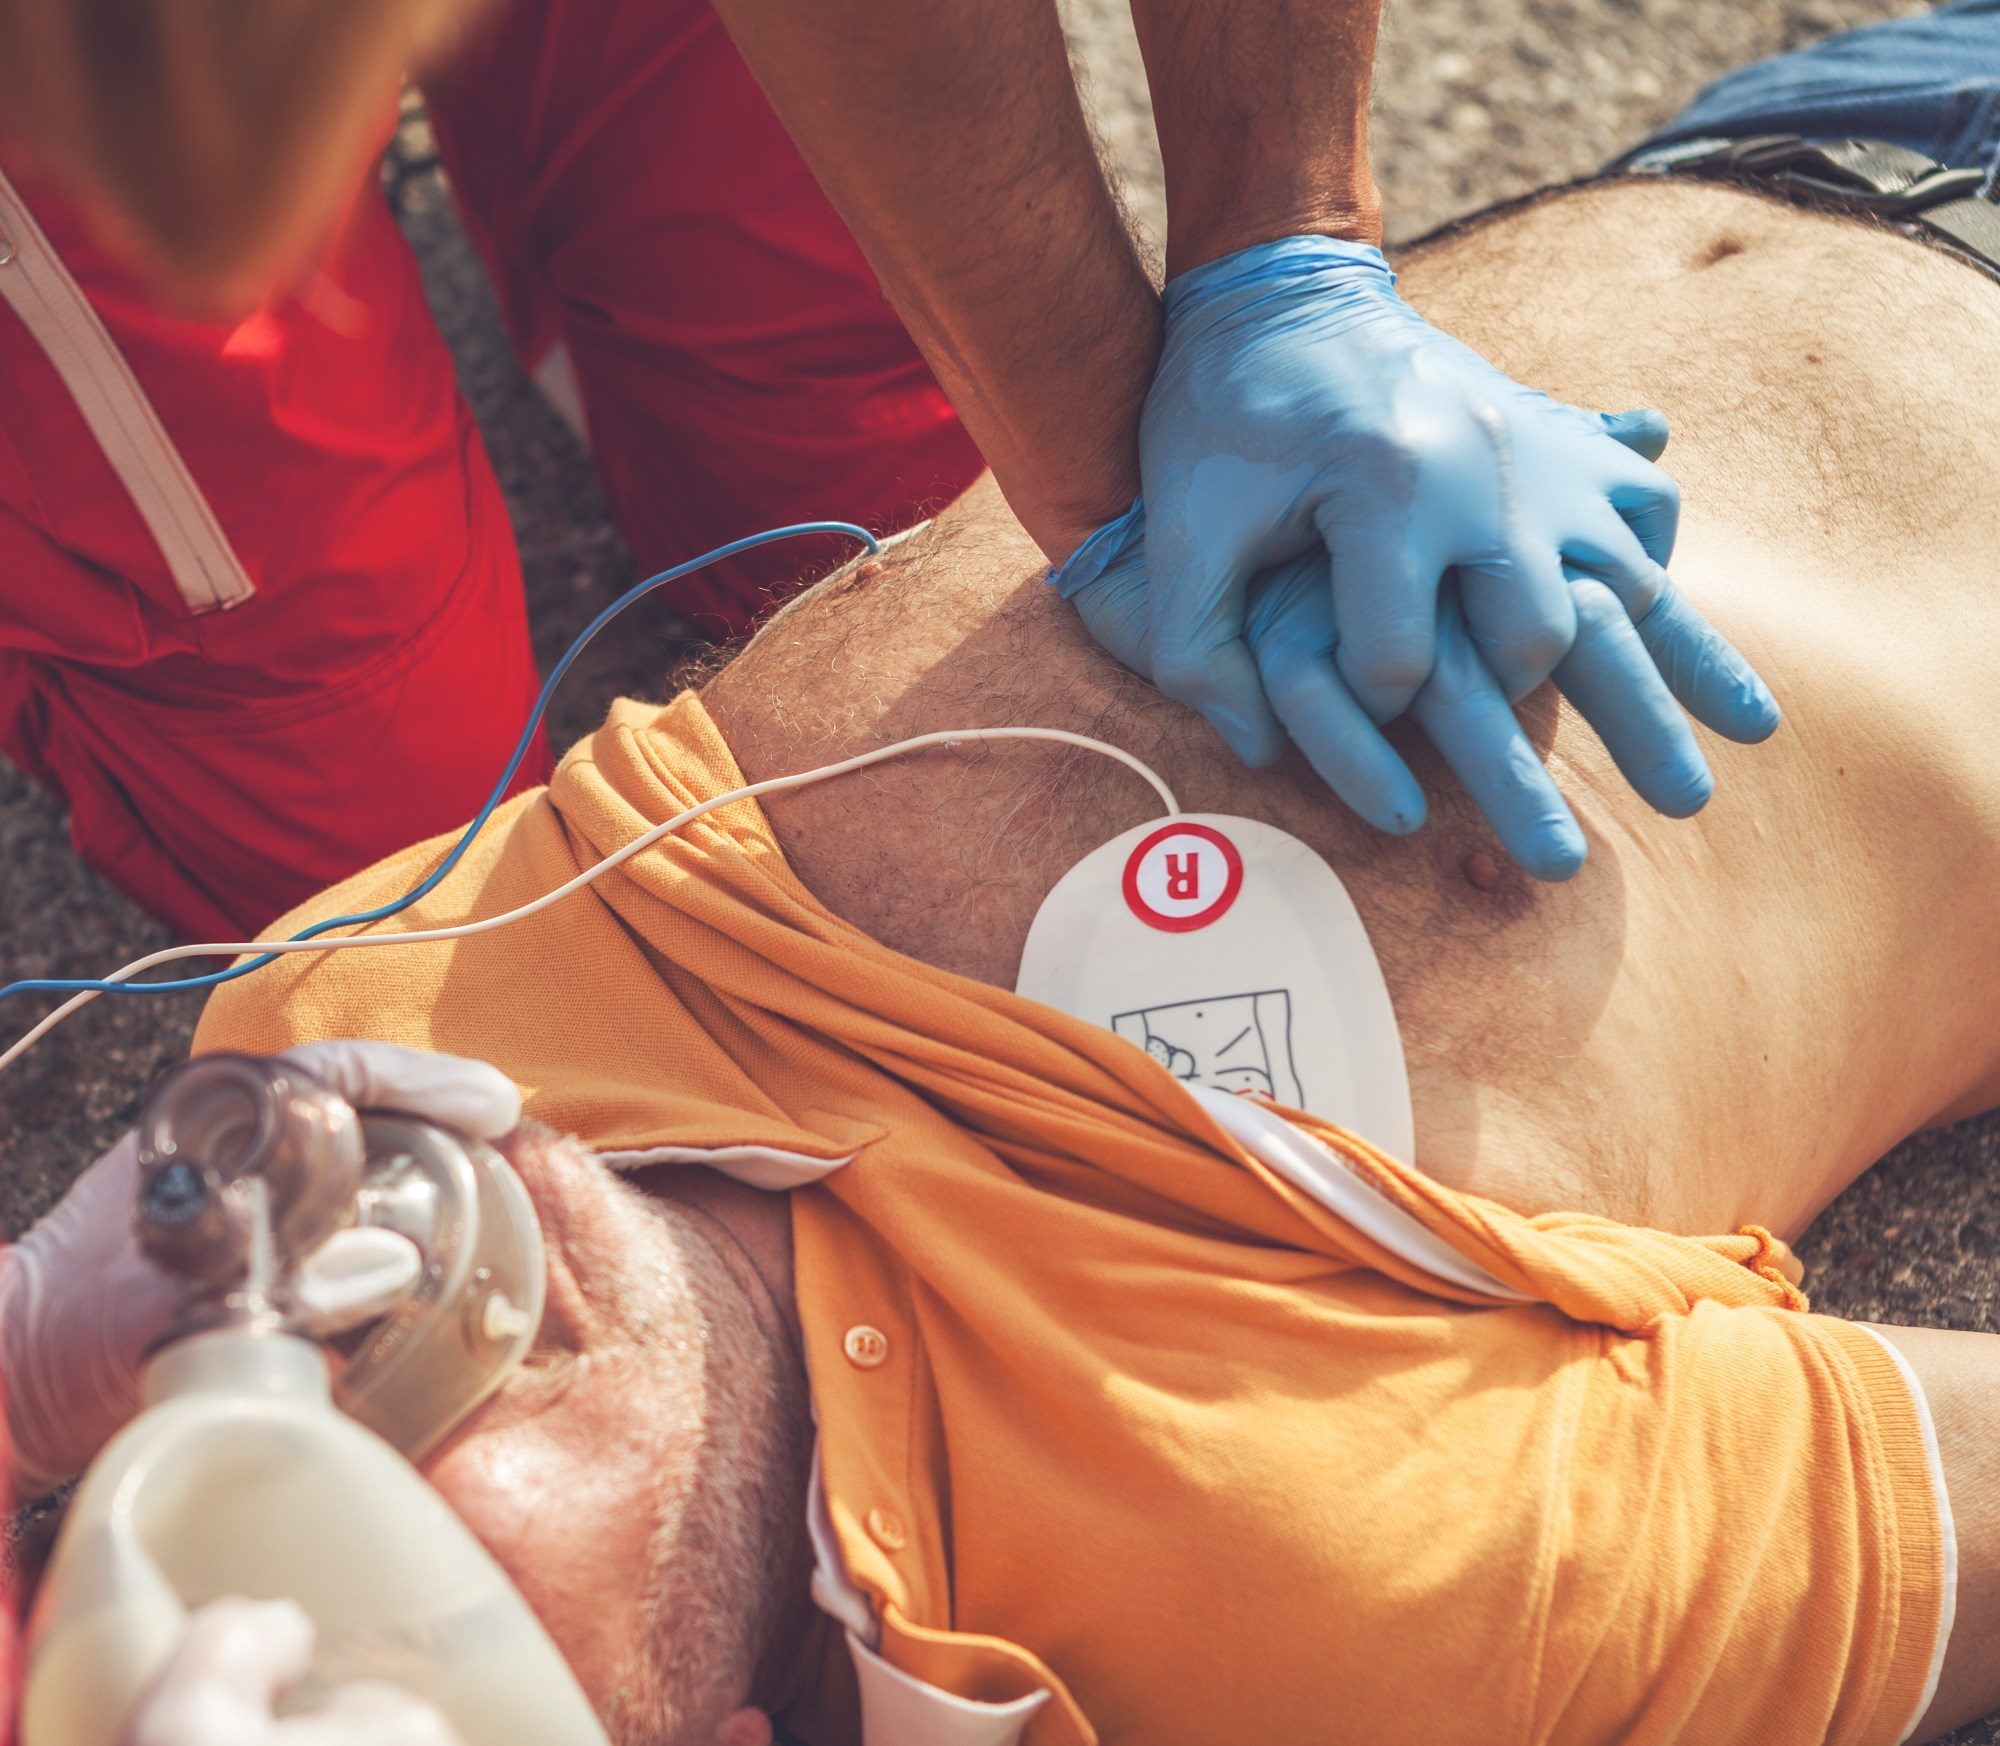 Mechanical chest compression devices are not superior to conventional, high-quality manual chest compressions.